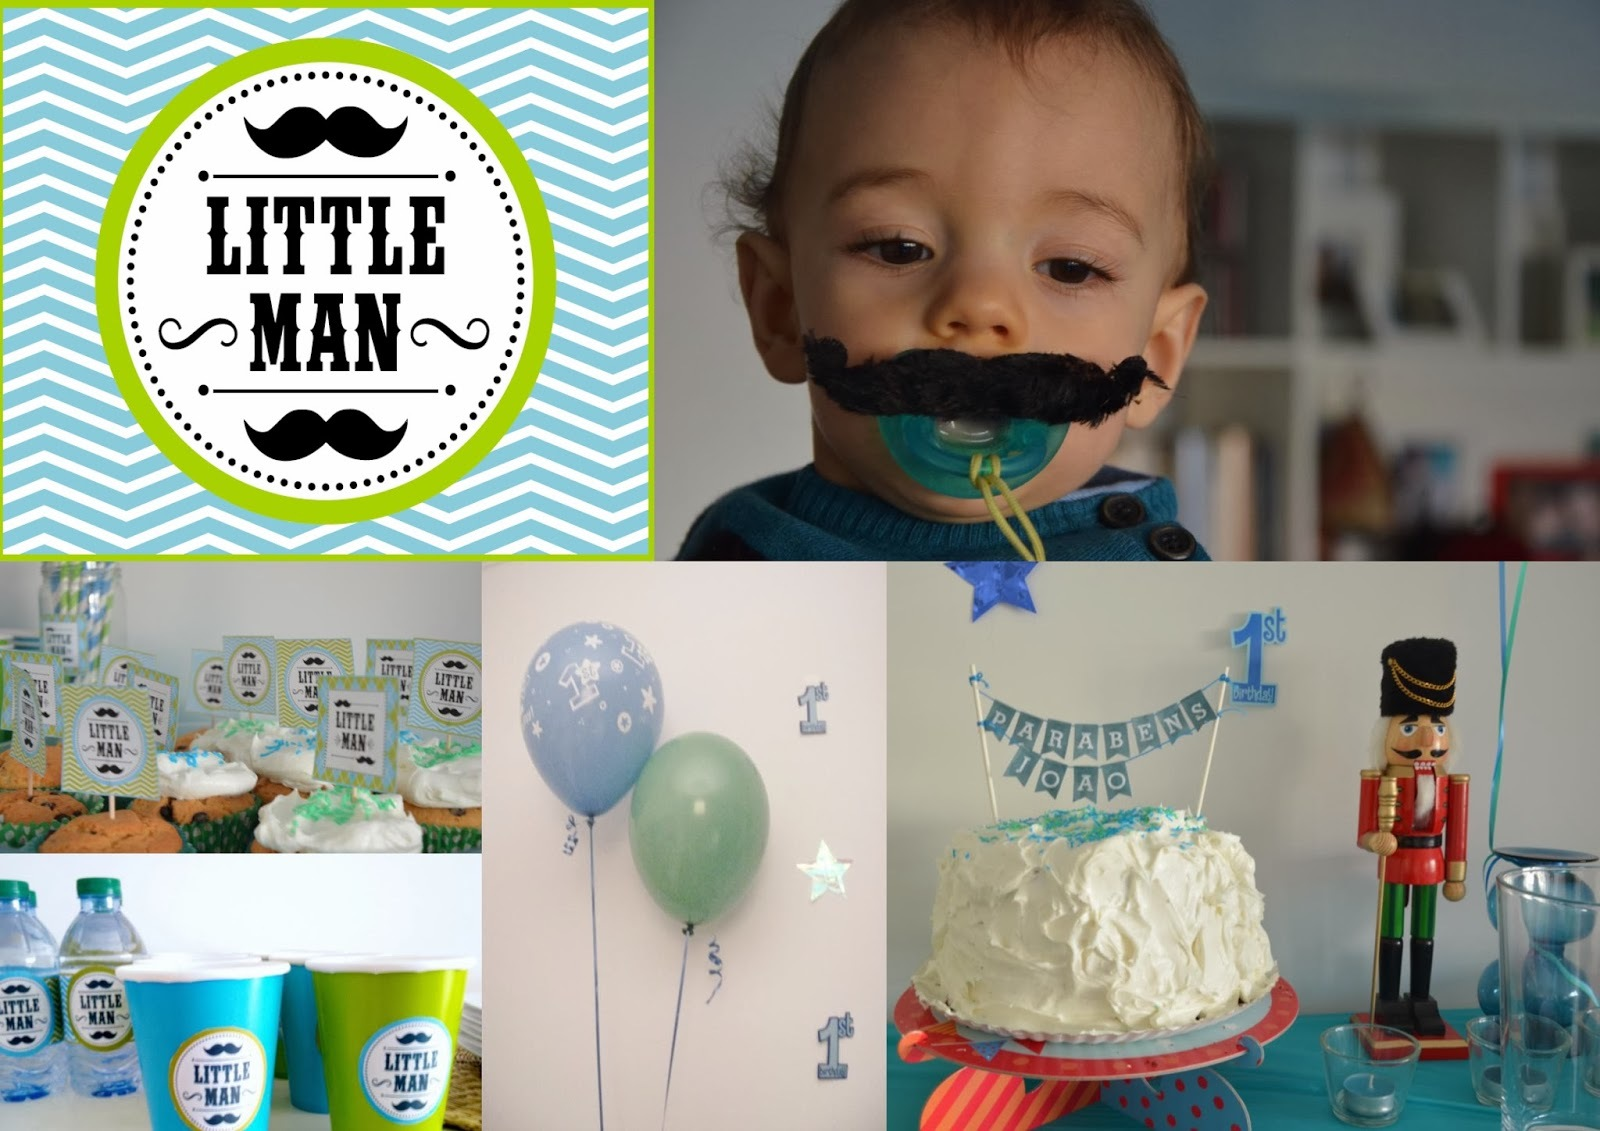 The Little Man Party